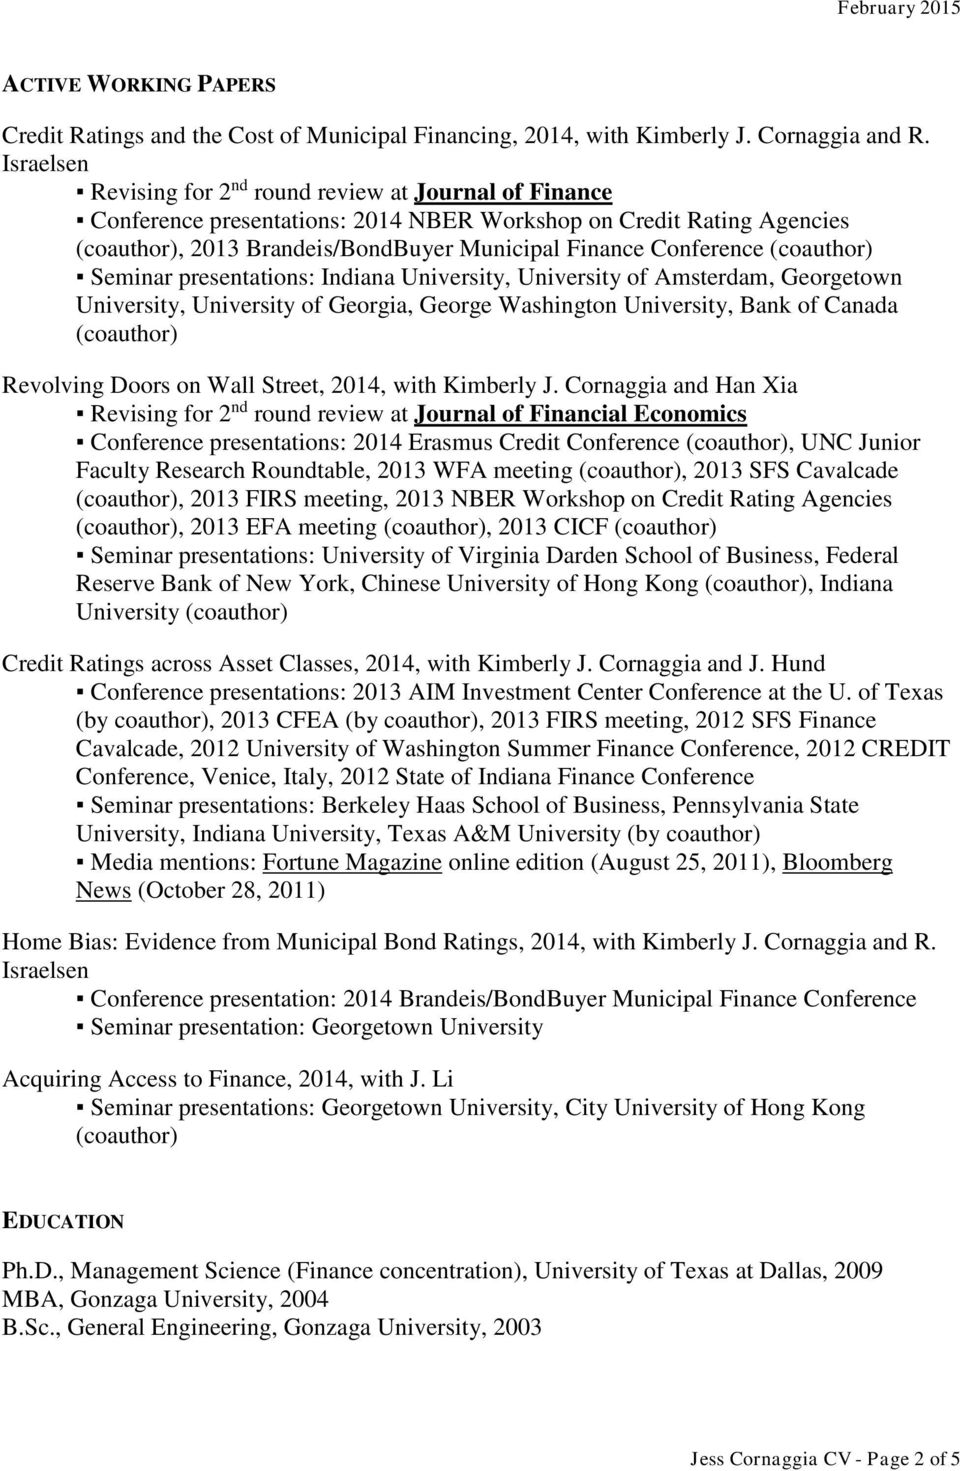 (coauthor) Seminar presentations: Indiana University, University of Amsterdam, Georgetown University, University of Georgia, George Washington University, Bank of Canada (coauthor) Revolving Doors on